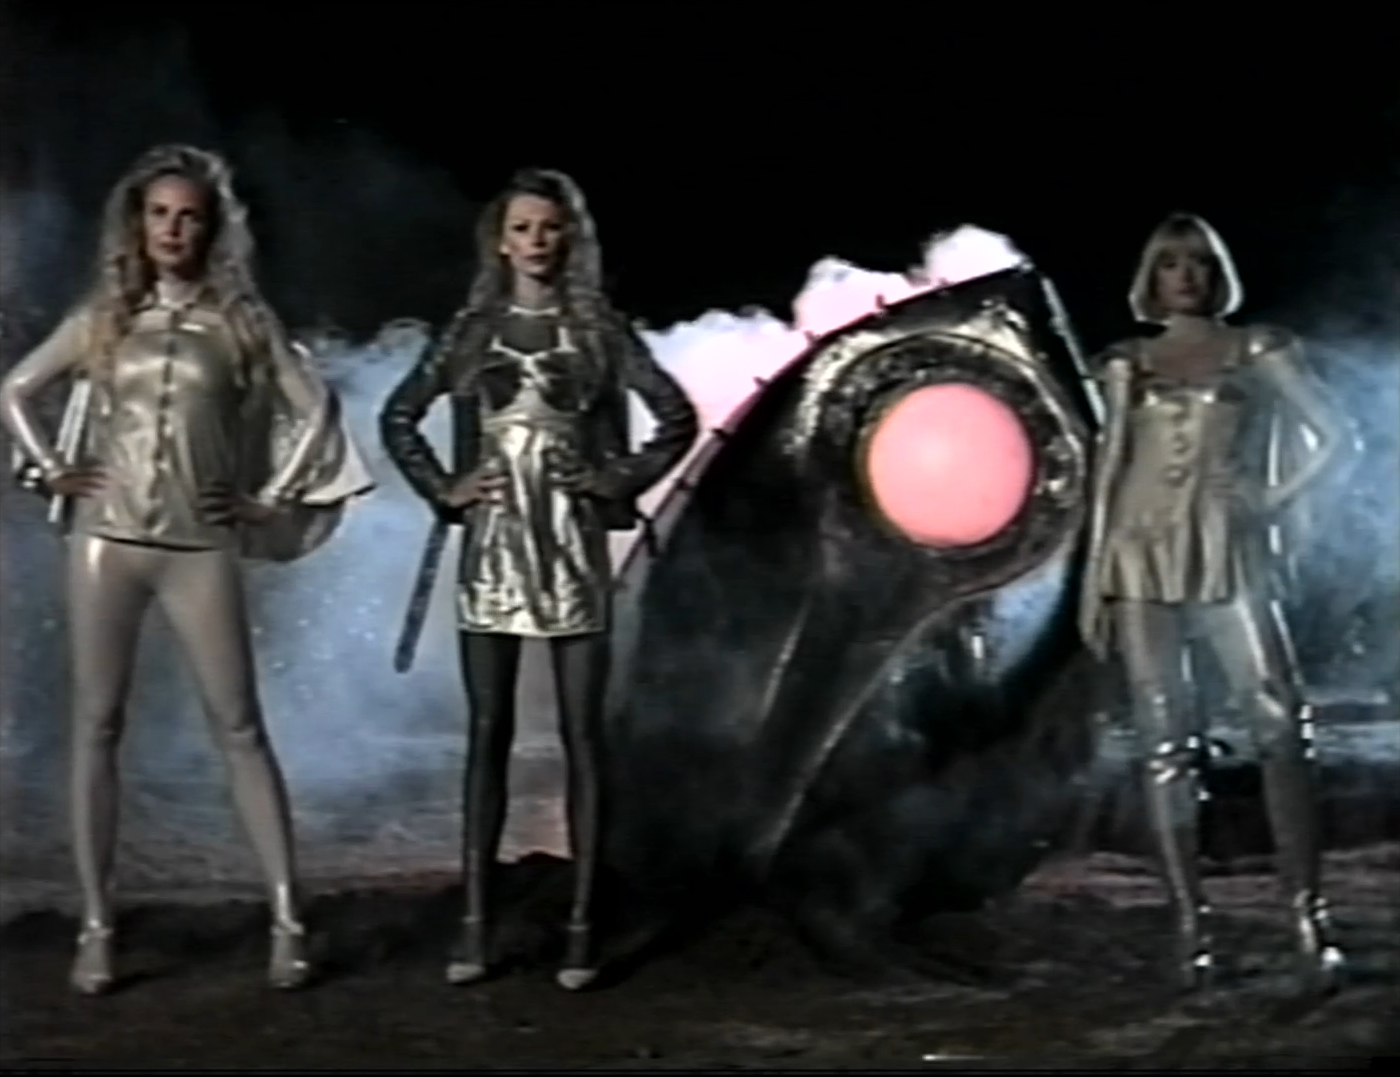 Three women in silver bodysuits stand next to a crashed spaceship.